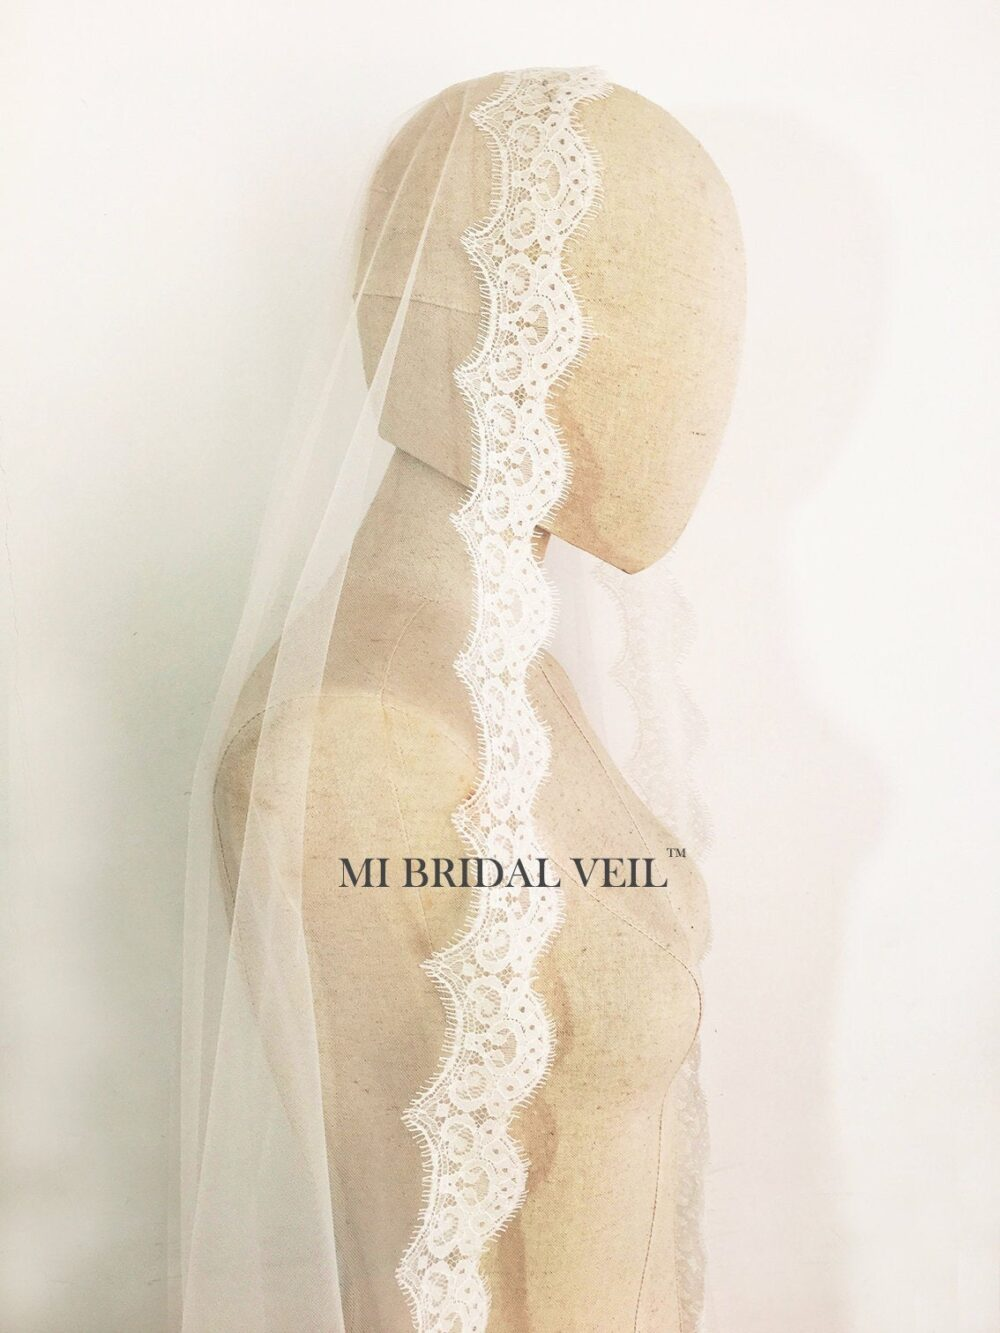 Cathedral Wedding Veil, Chantilly Lace Drop Blusher Mantilla Eyelash Bridal Mi Veil